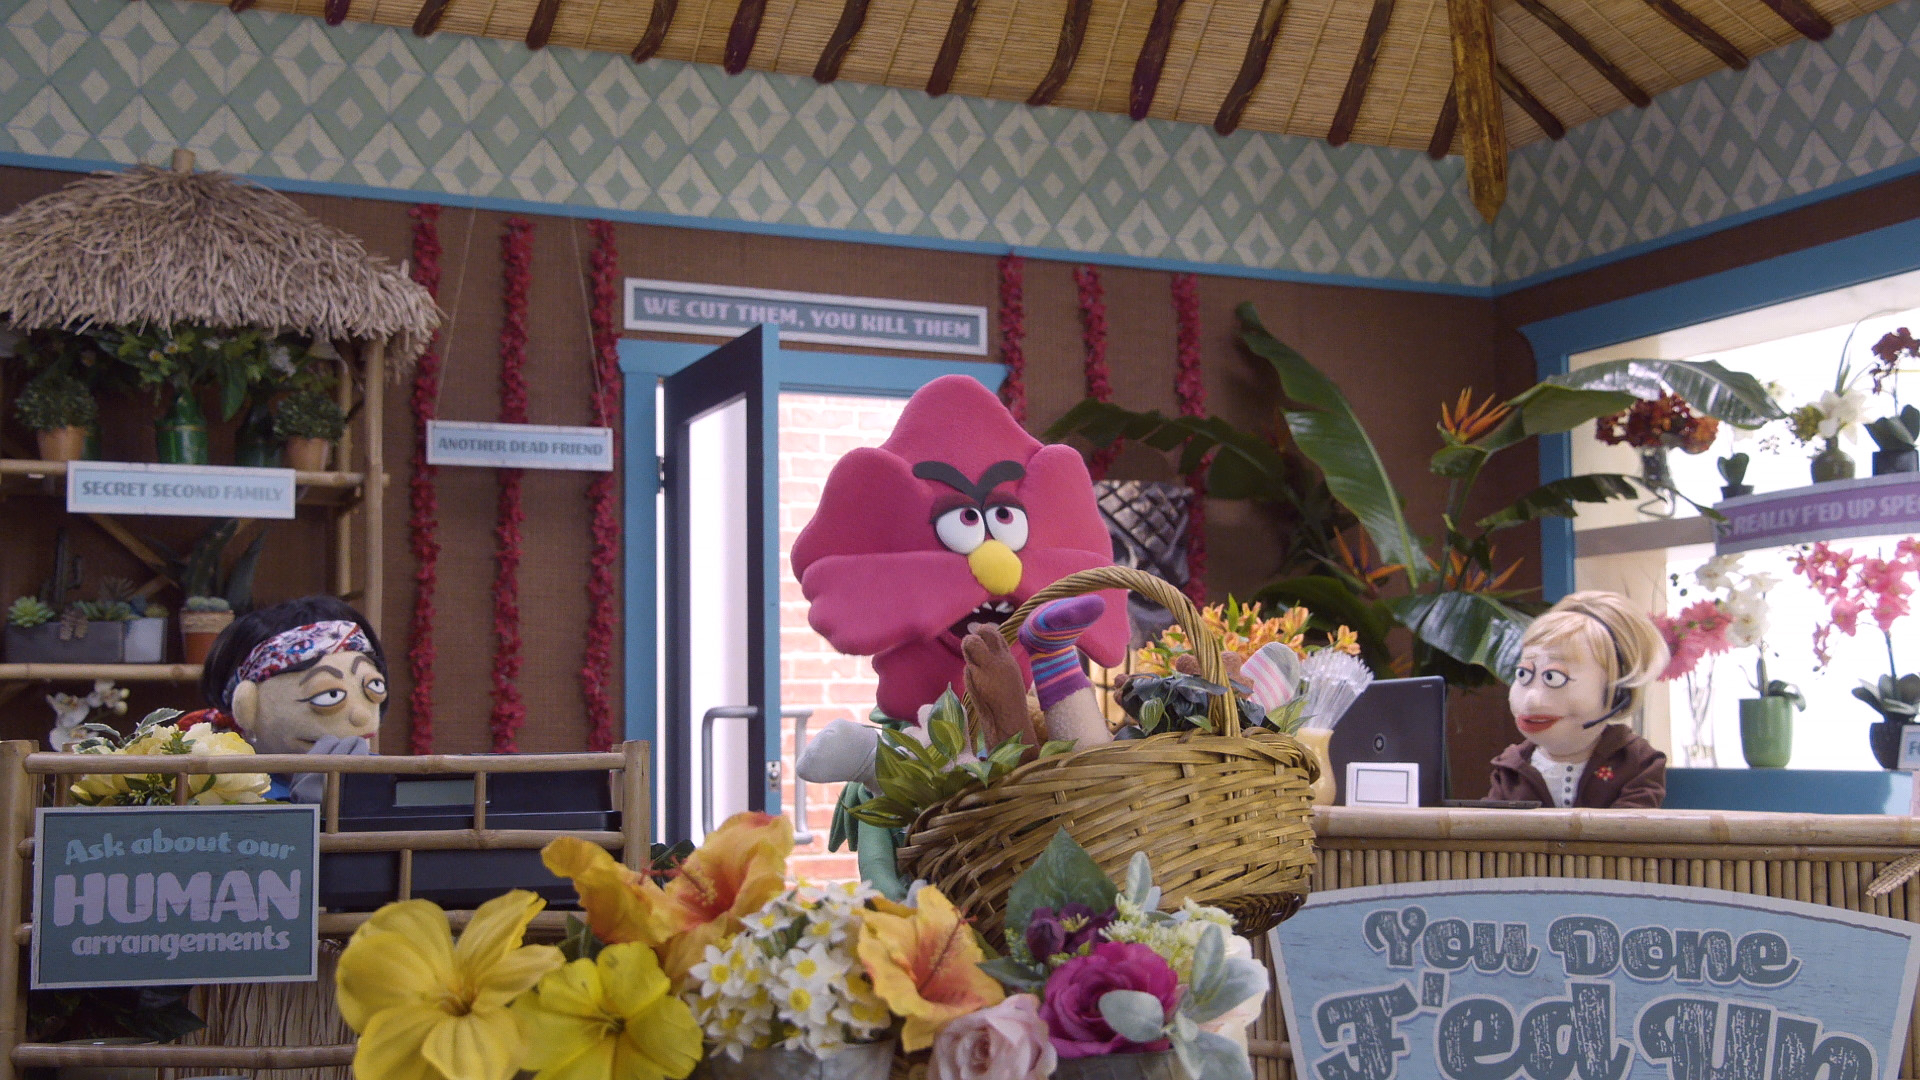 An angry flower stomps into a flower shop on Comedy Central's Crank Yankers